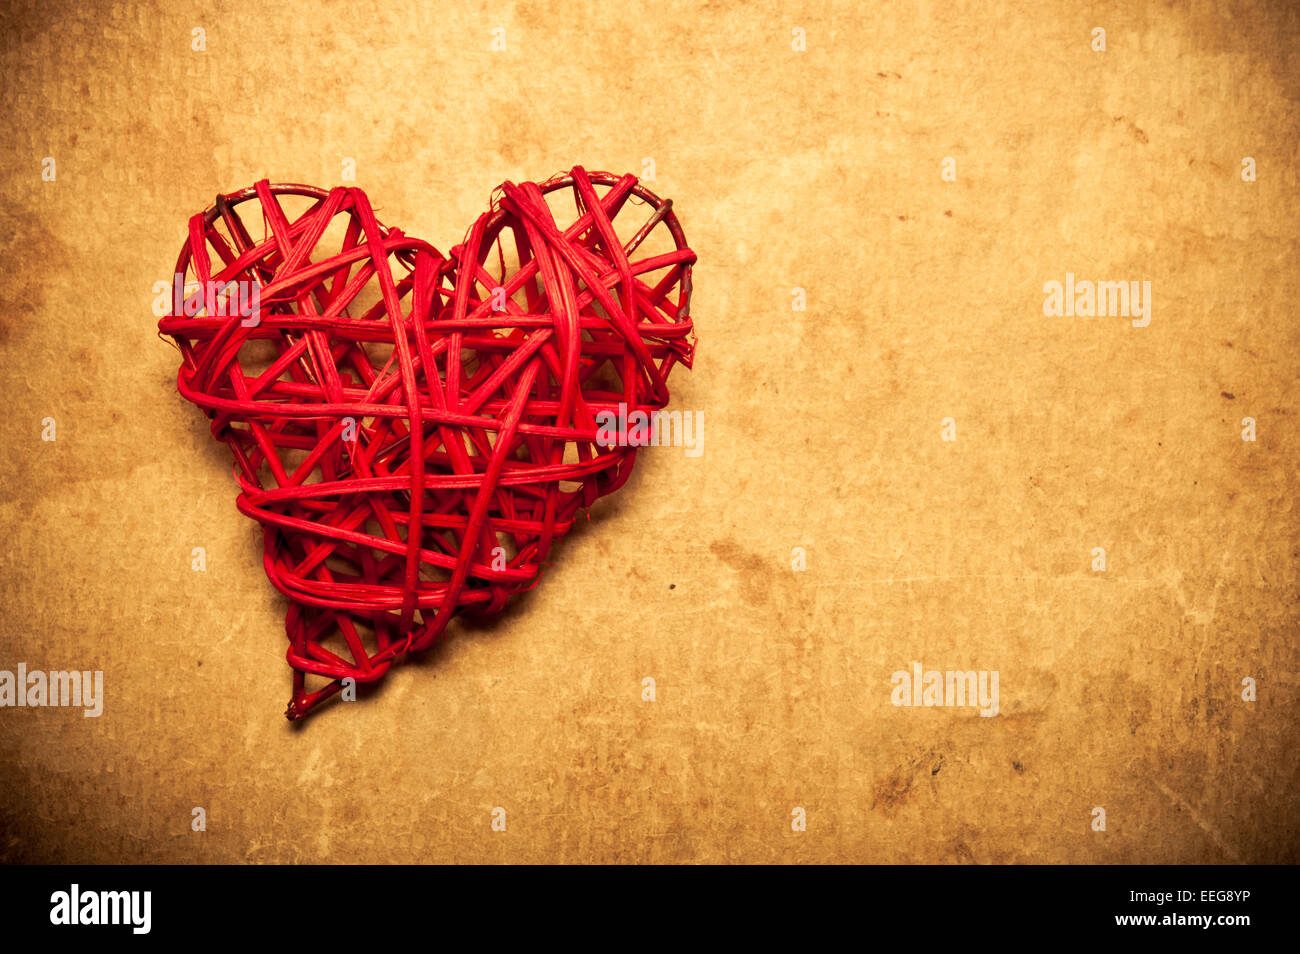 valentine heart shape, love concept - Stock Image